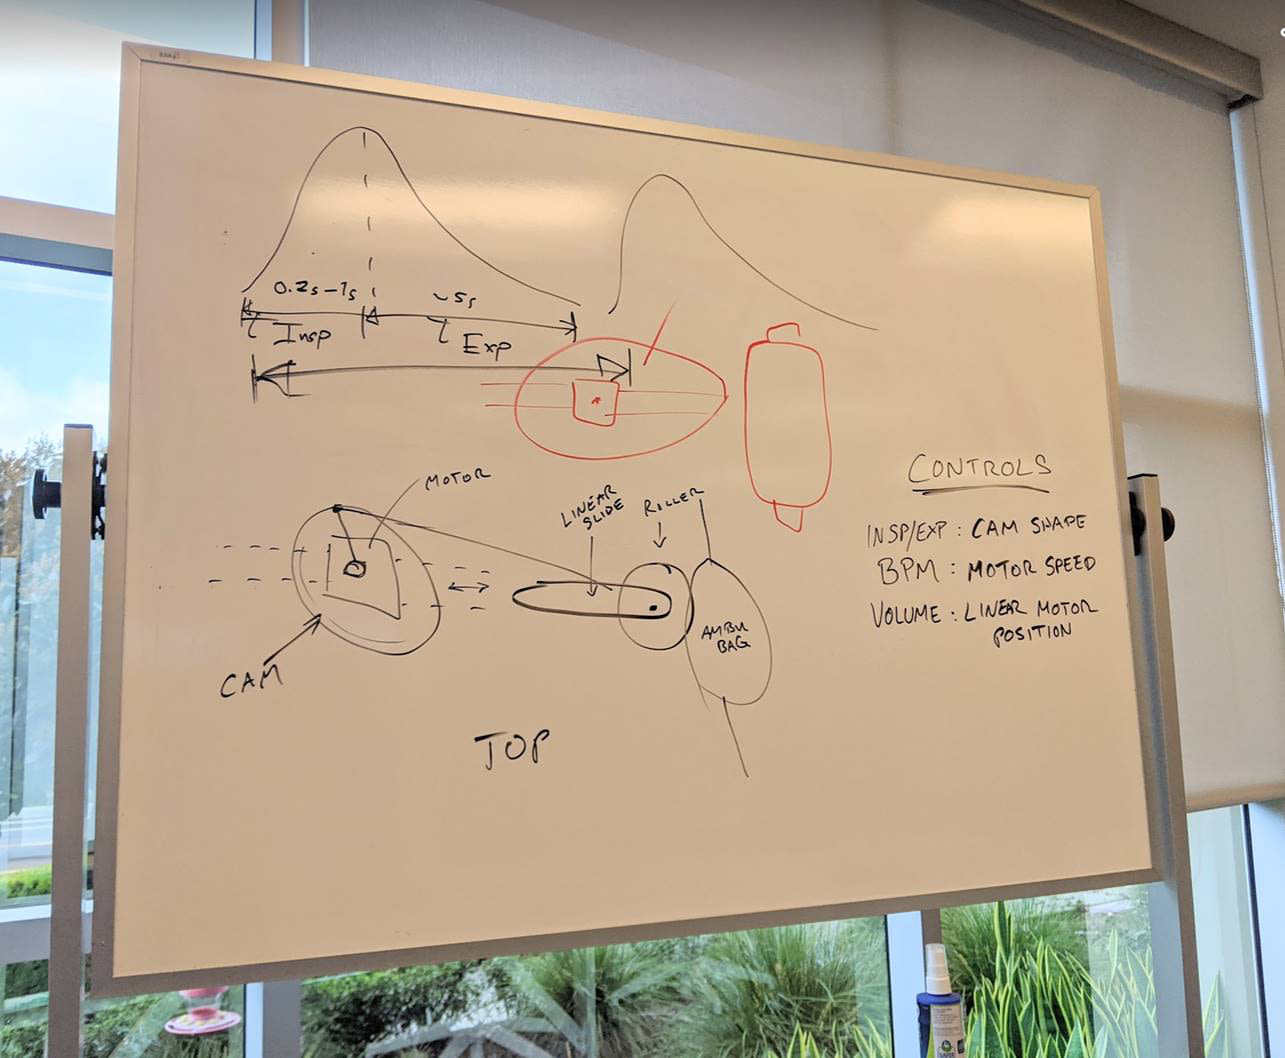 A whiteboard with the original design of the Virgin Orbit bridge ventilator